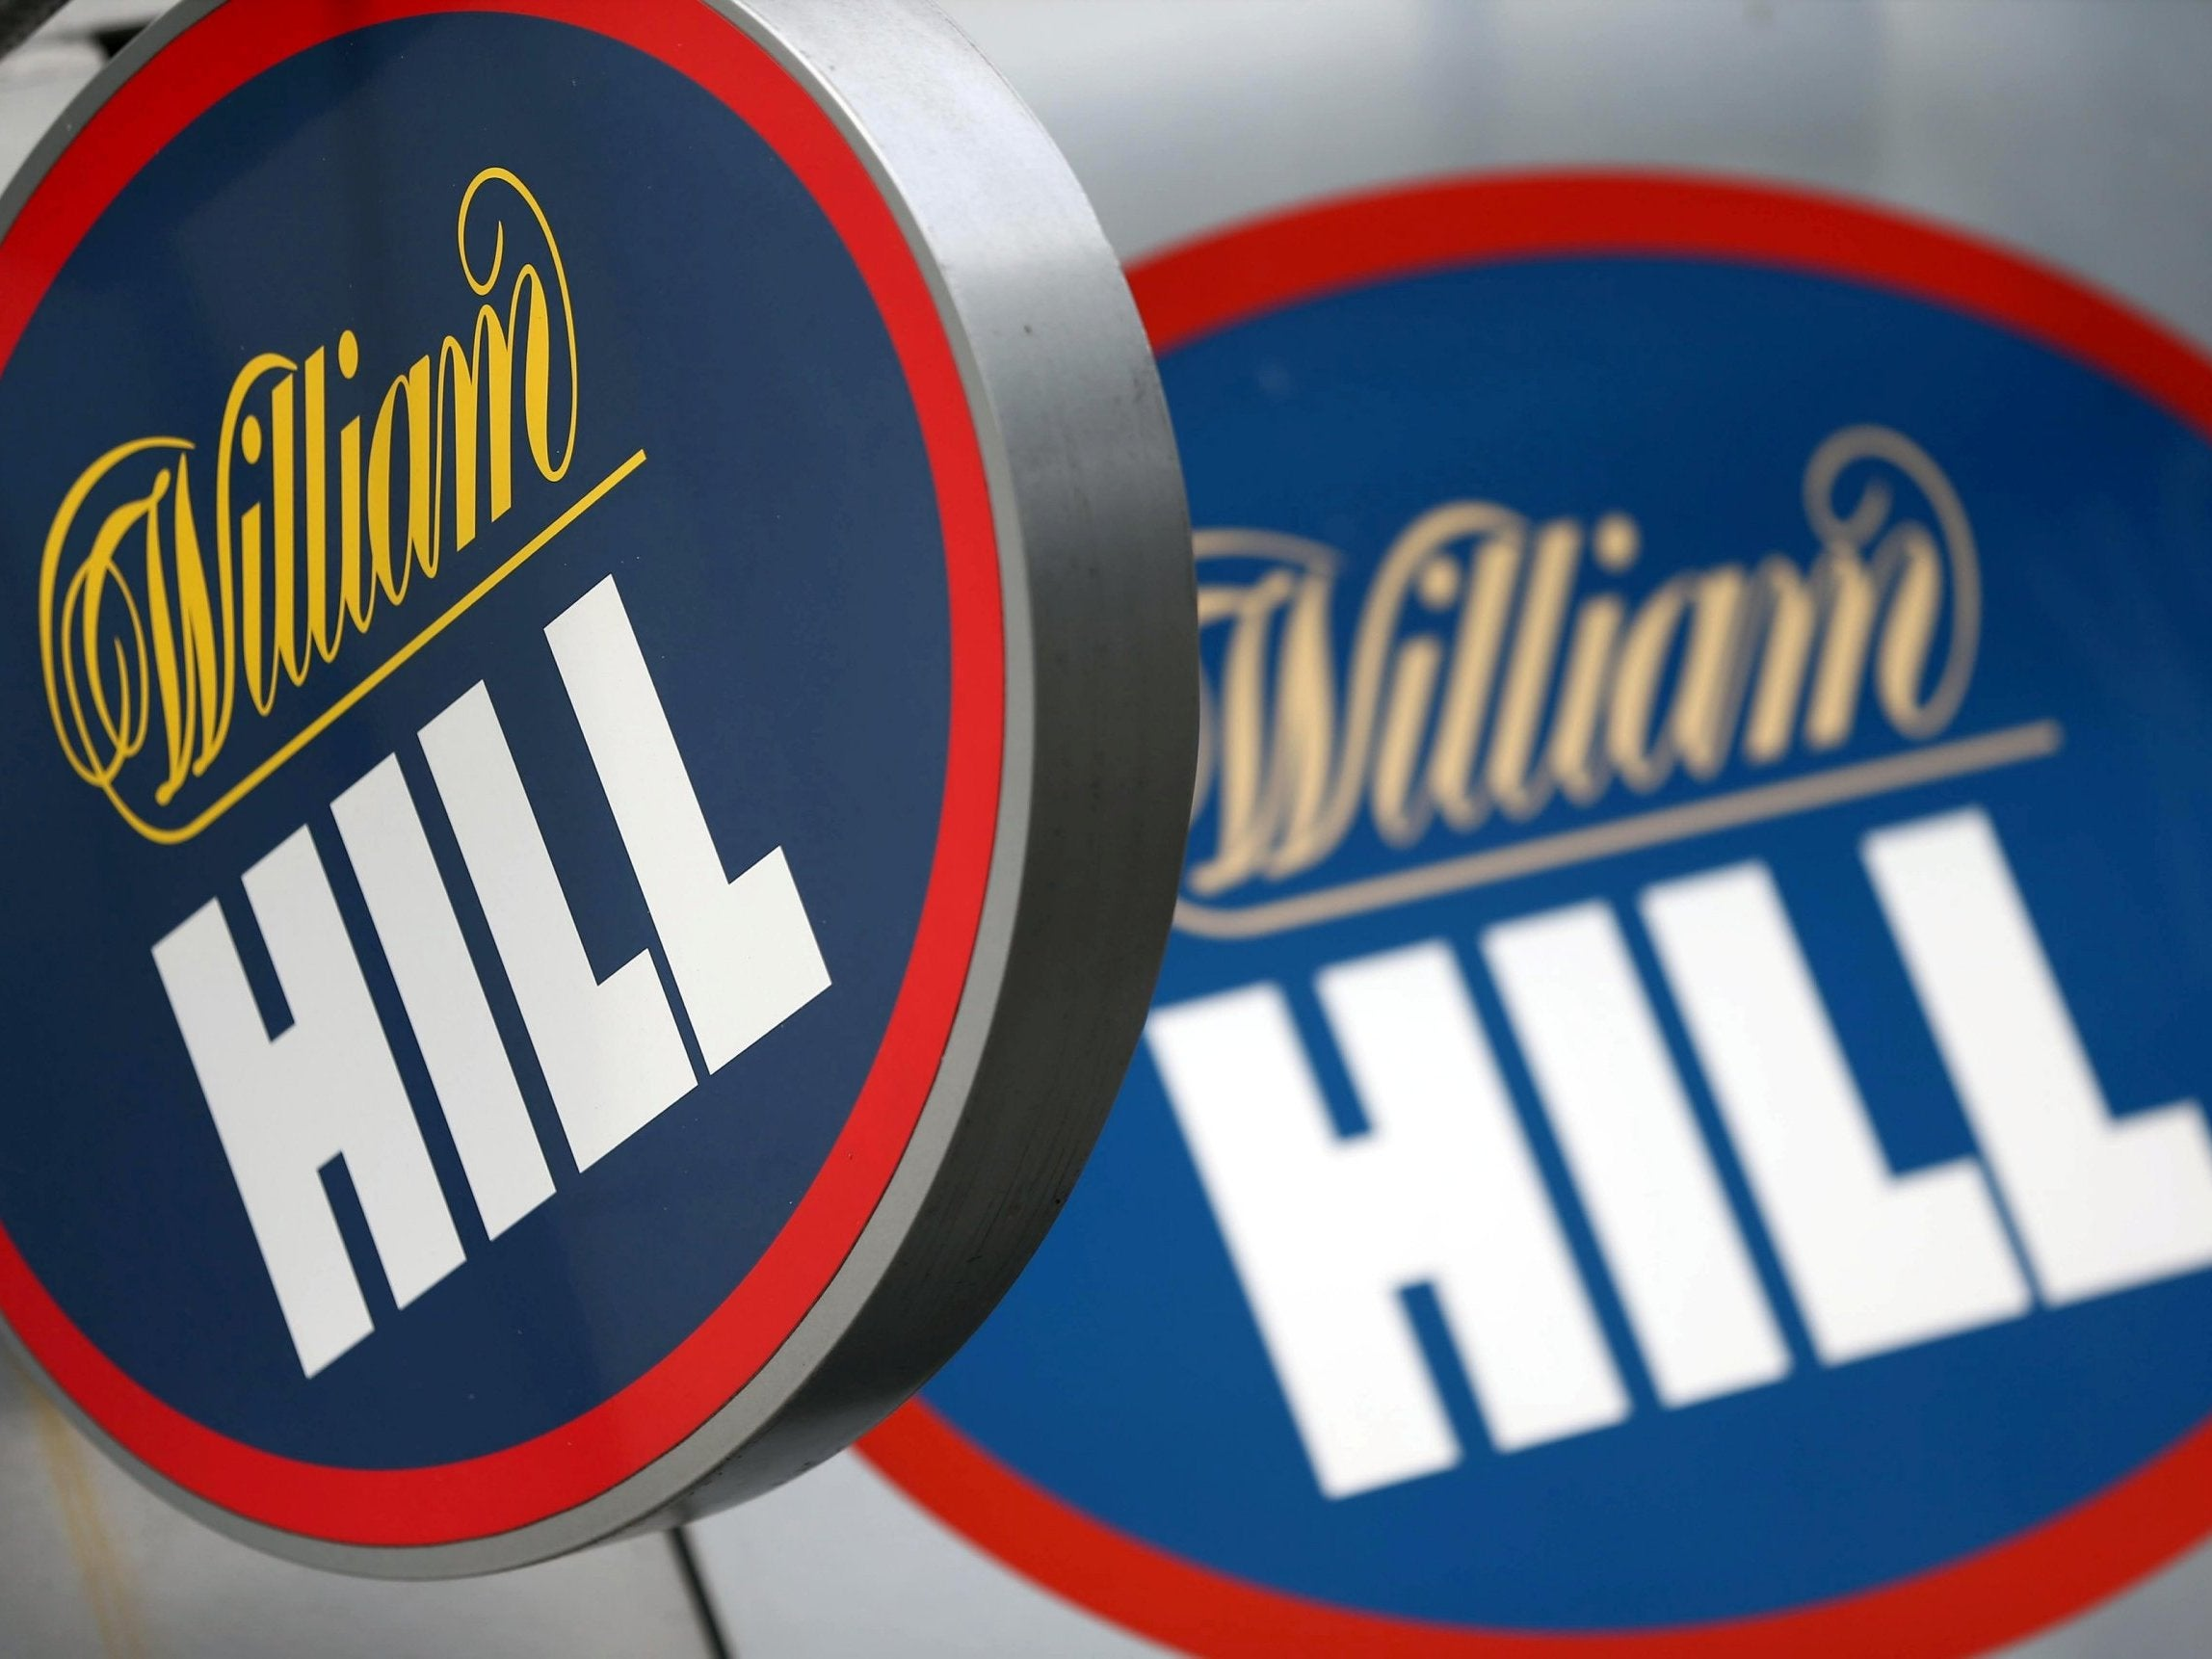 William Hill - latest news, breaking stories and comment - The